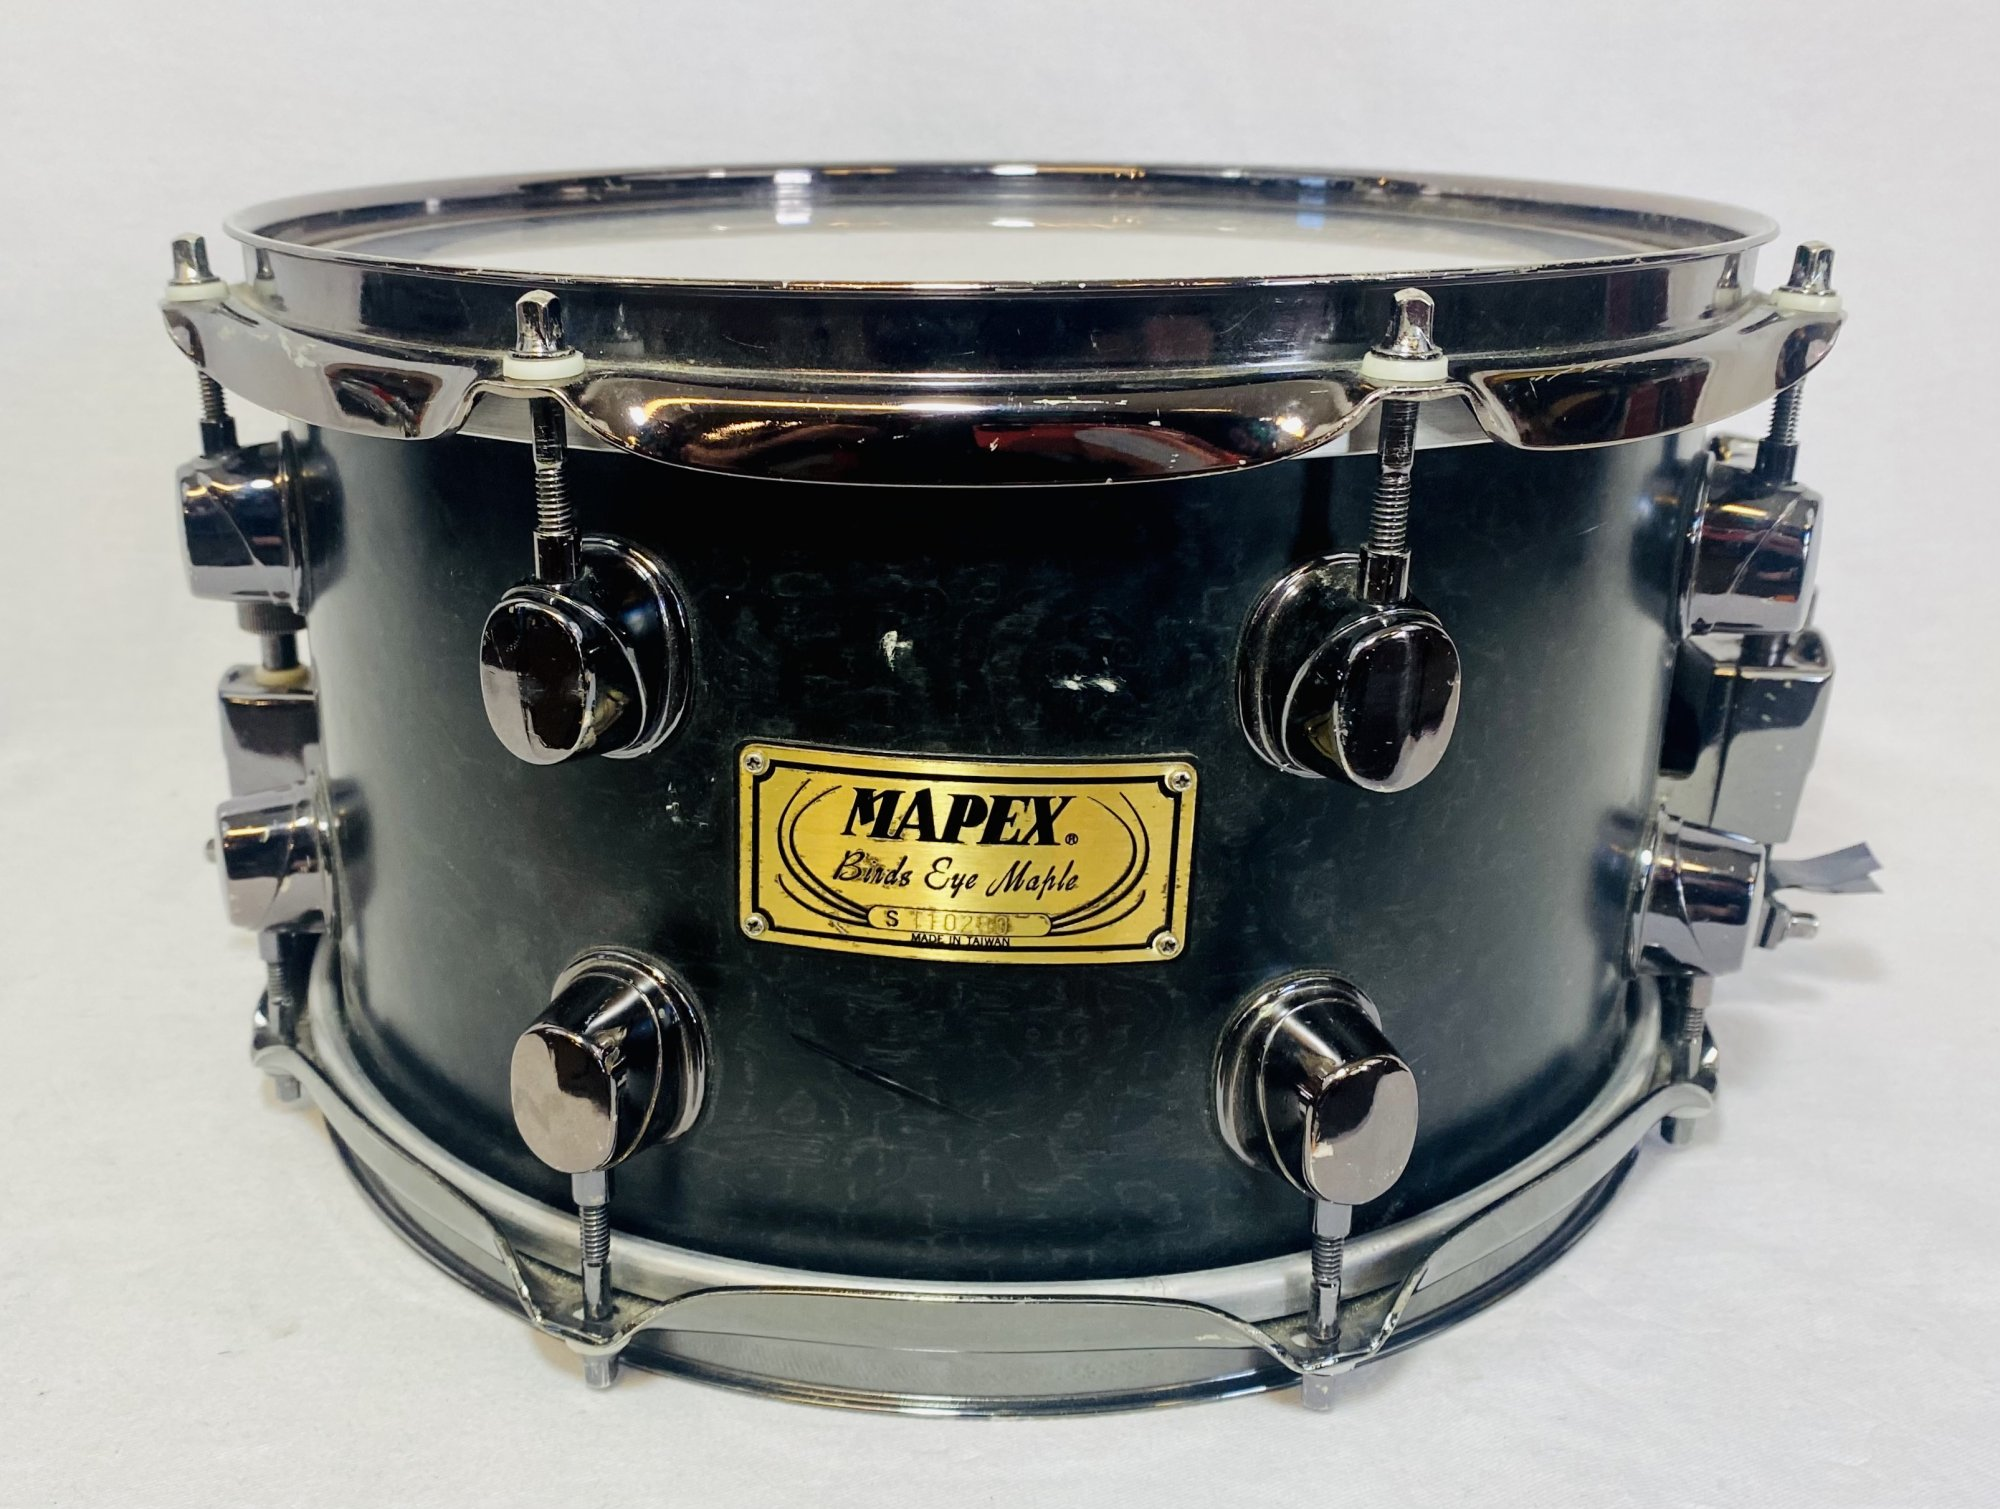 MAPEX BIRDS EYE MAPLE SNARE 12X6.5 SNARE COMES WITH BAG